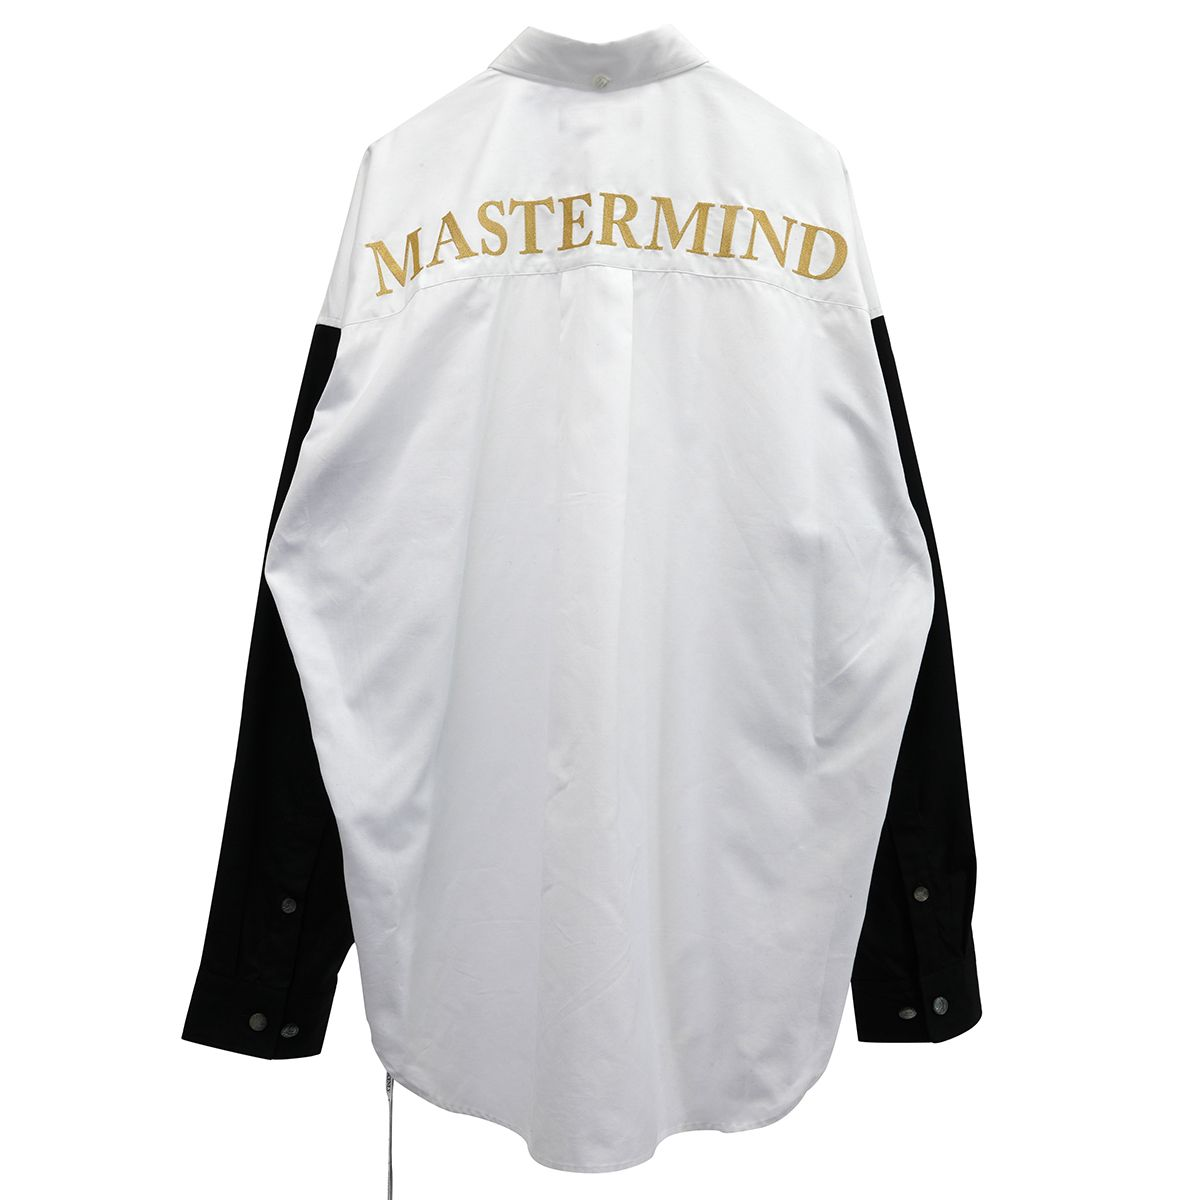 MASTERMIND WORLD SH002 / 201 : WHITE-BLACK